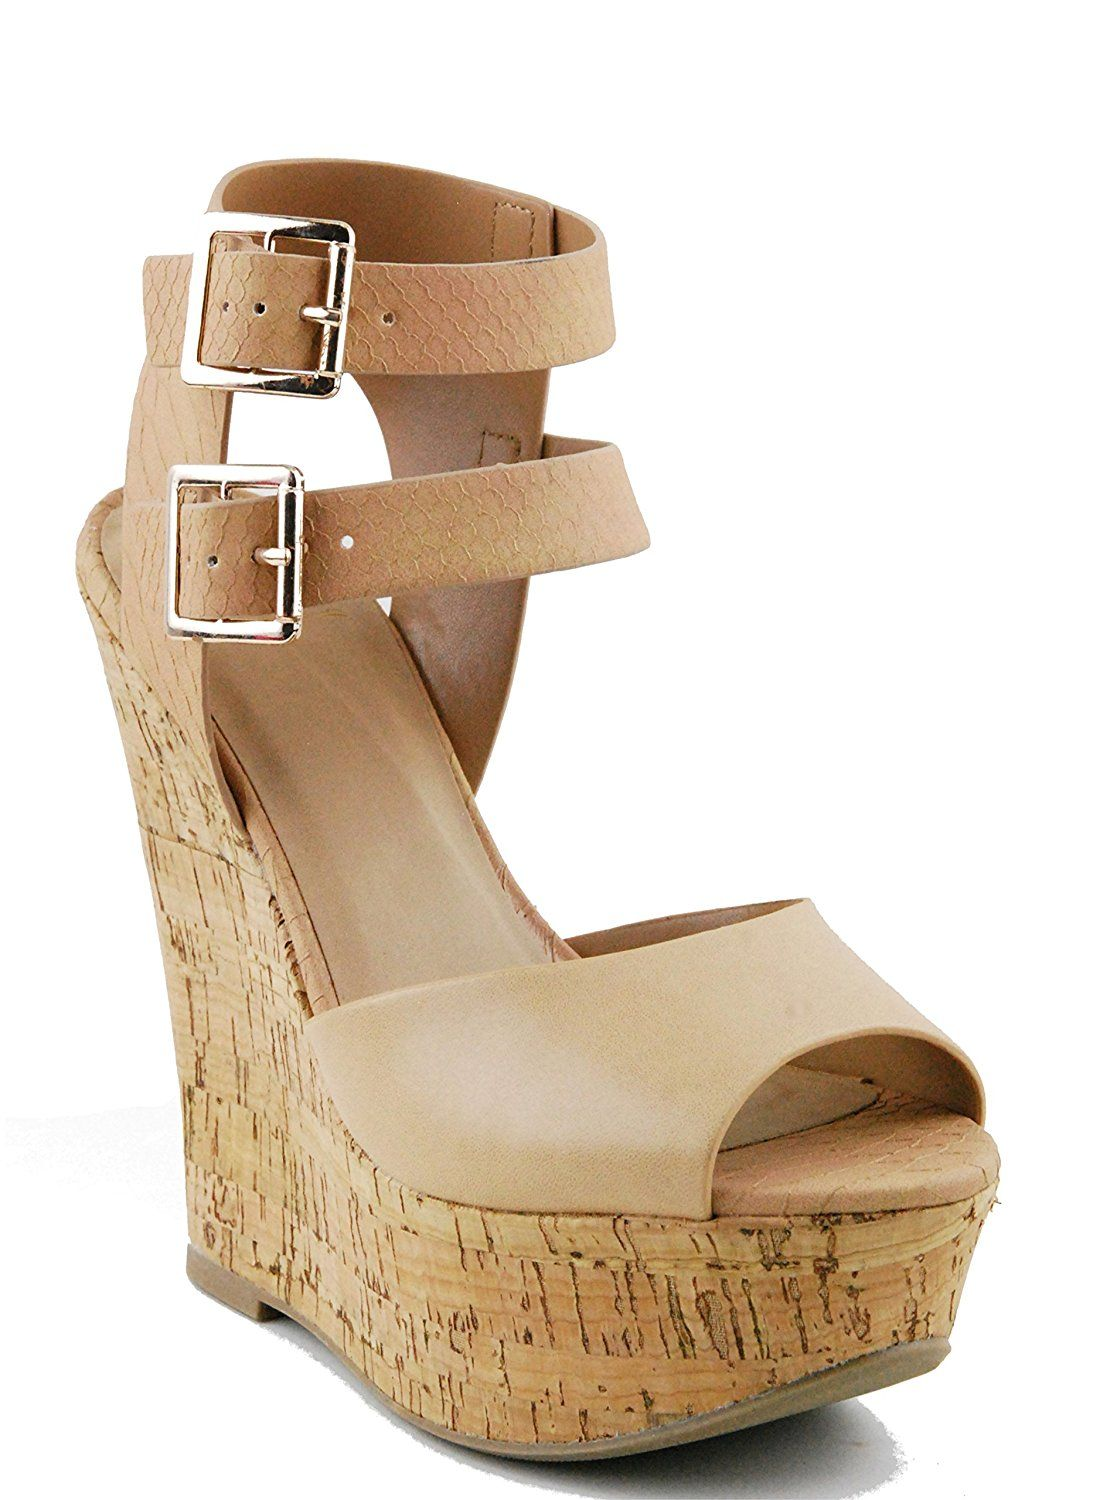 47869517307 Cobber-S Womens Ankle Strap Double Buckle Wedge Platform Sandals Wooden  Heels Shoes NEW     For more information